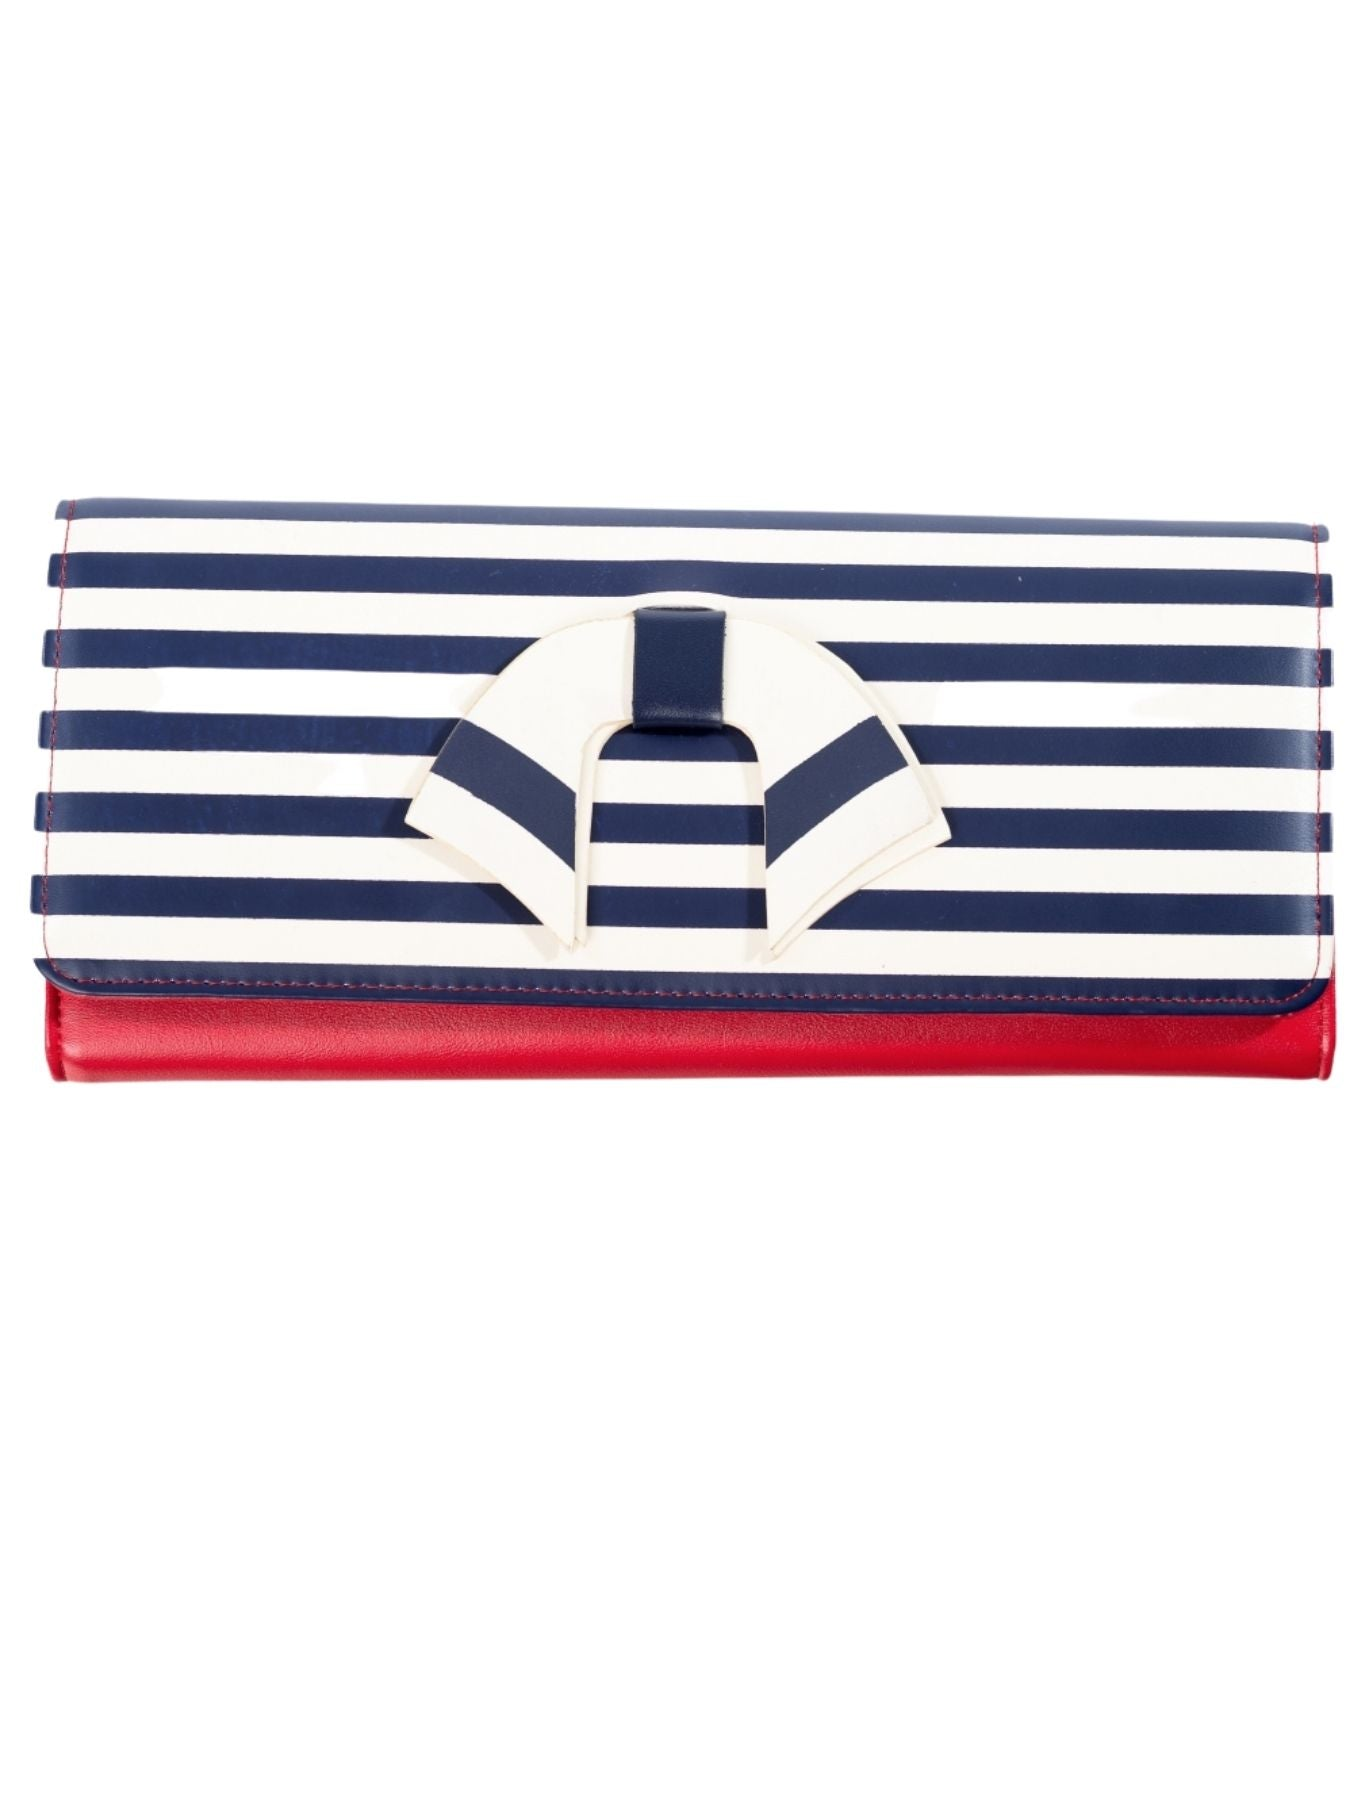 Banned Retro 50s Vintage Nautical Purse - Bohemian Finds